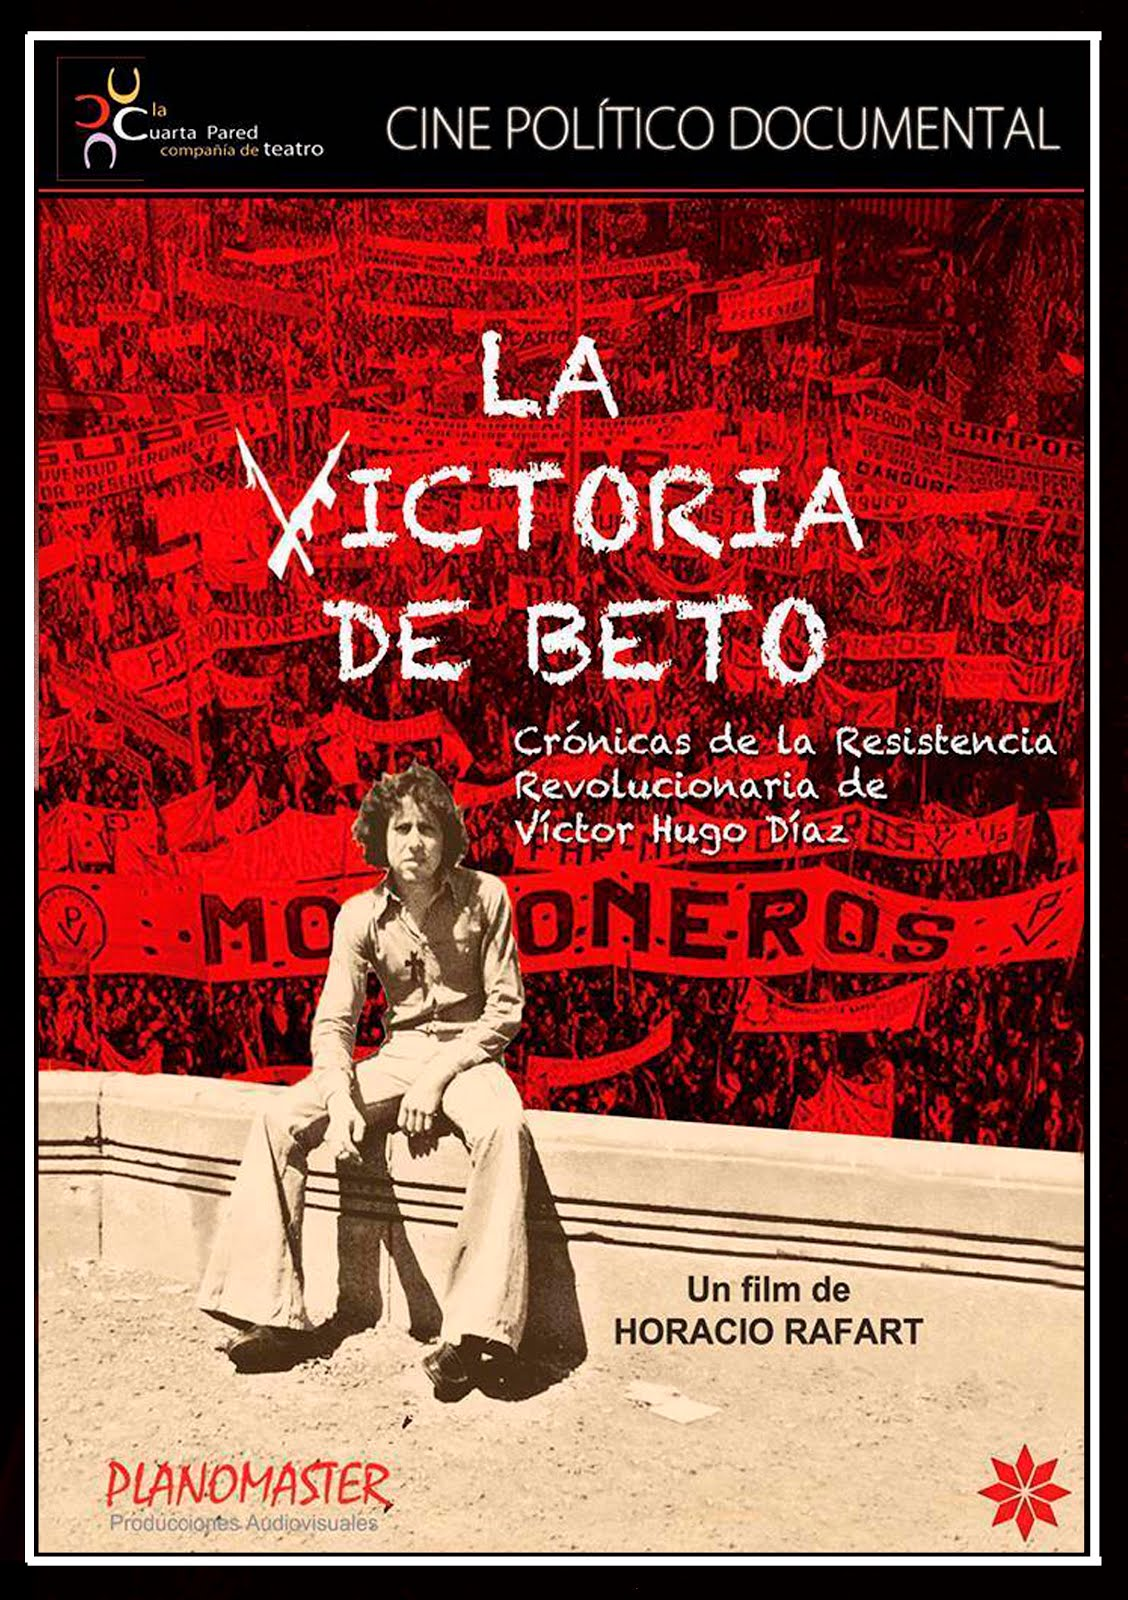 Cine - documental